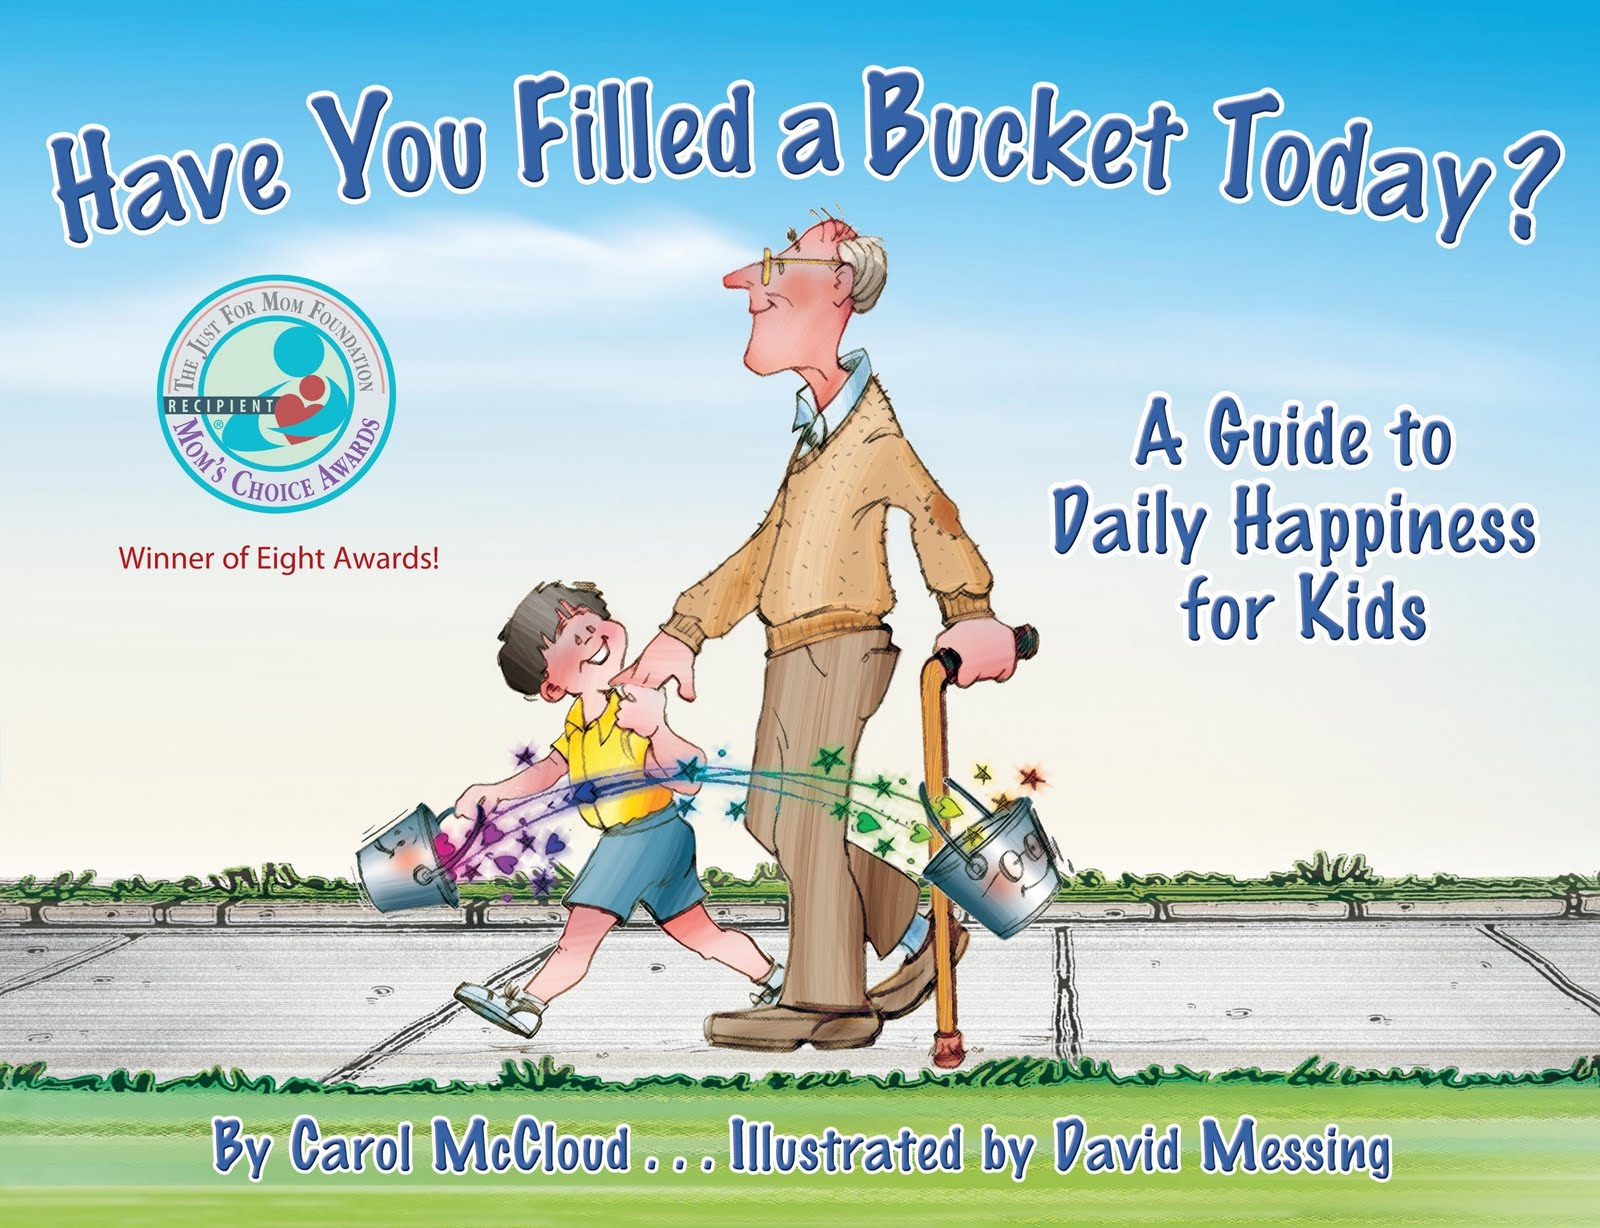 Better Education: Have You Filled a Bucket Today?